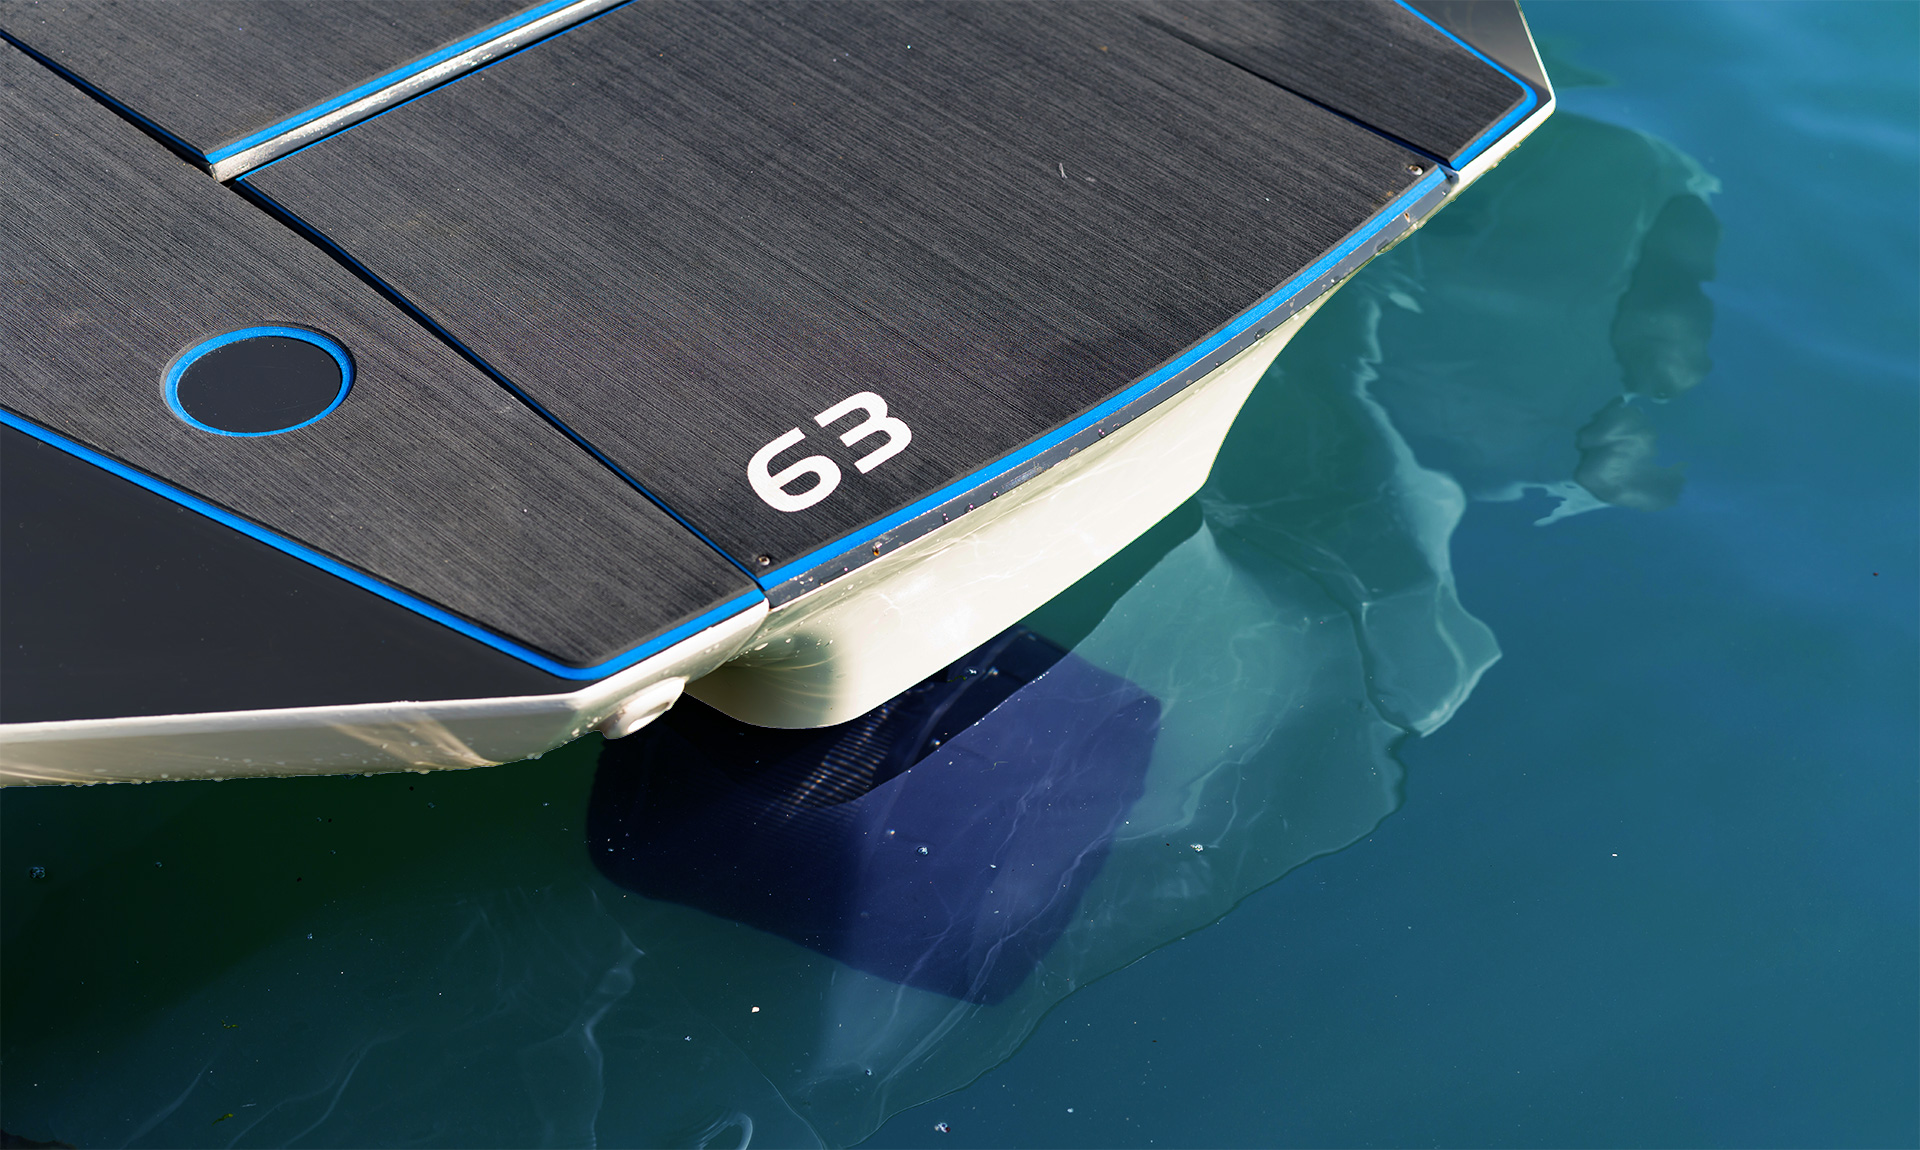 Electric Boat - Pulse 63 RIB - RS Electric Boats - Stern Prop angle